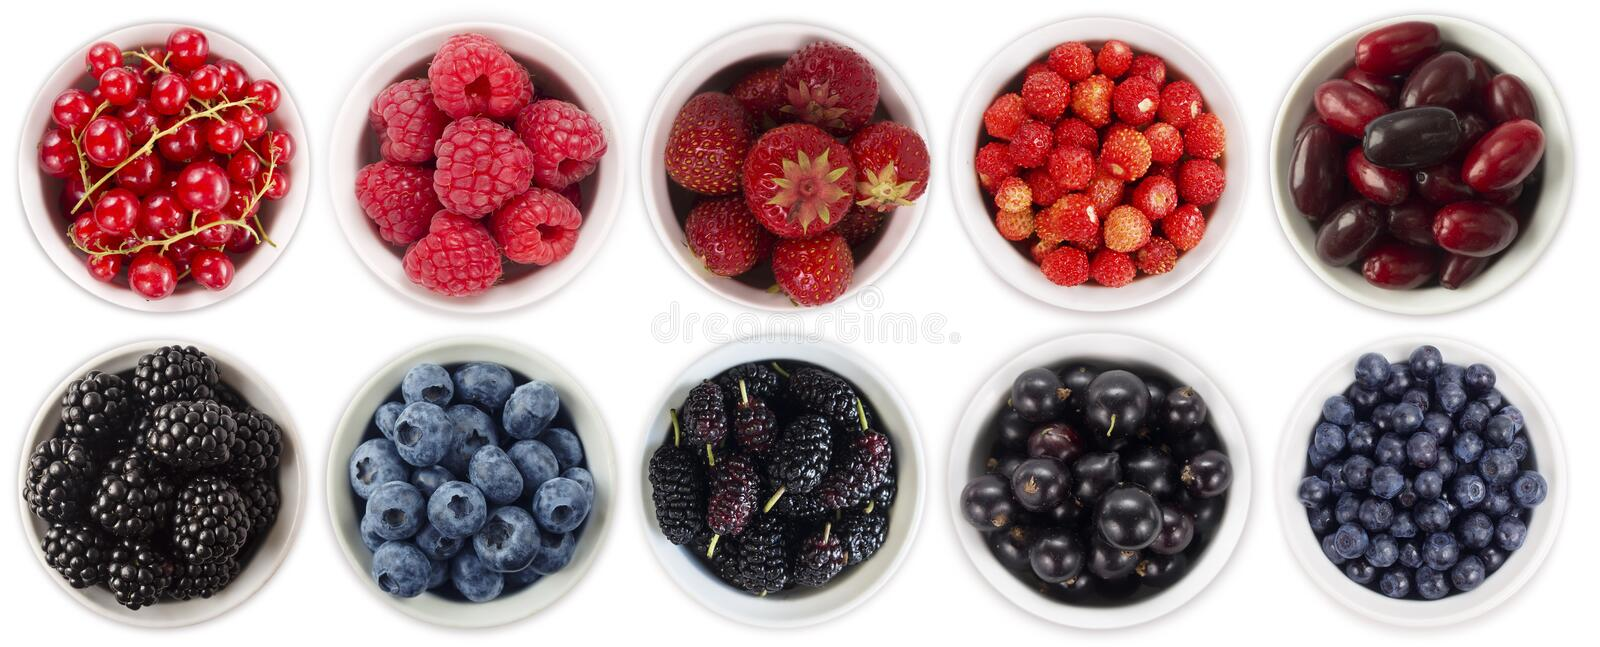 Black-blue and red berries isolated on white background. Collage of different fruits and berries. Blueberry, blackberry, mulberry, royalty free stock photo